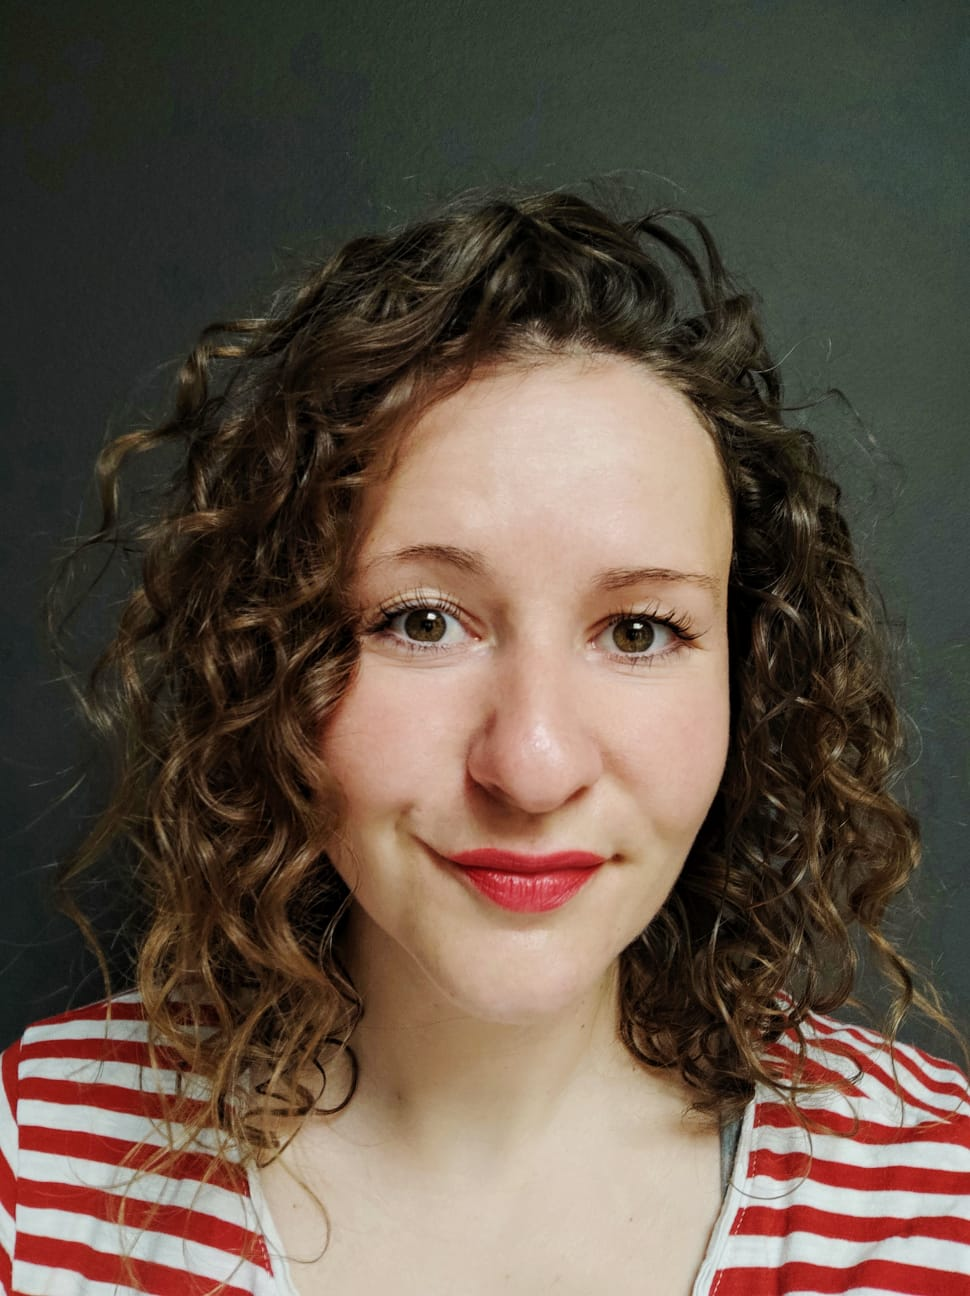 Wunderbare Locken mit CGM, der Curly Girl Methode // judetta.de